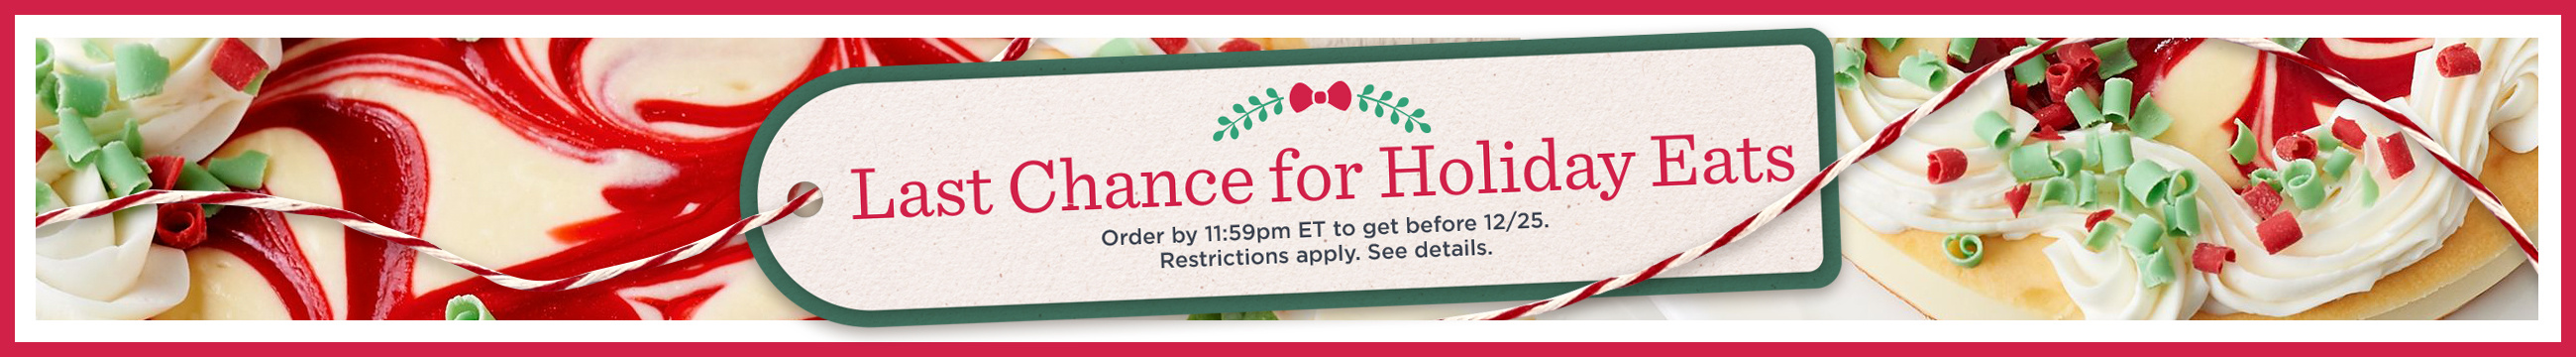 Last Chance for Holiday Eats — Order by 11:59pm ET to get before 12/25. Restrictions apply. See details.